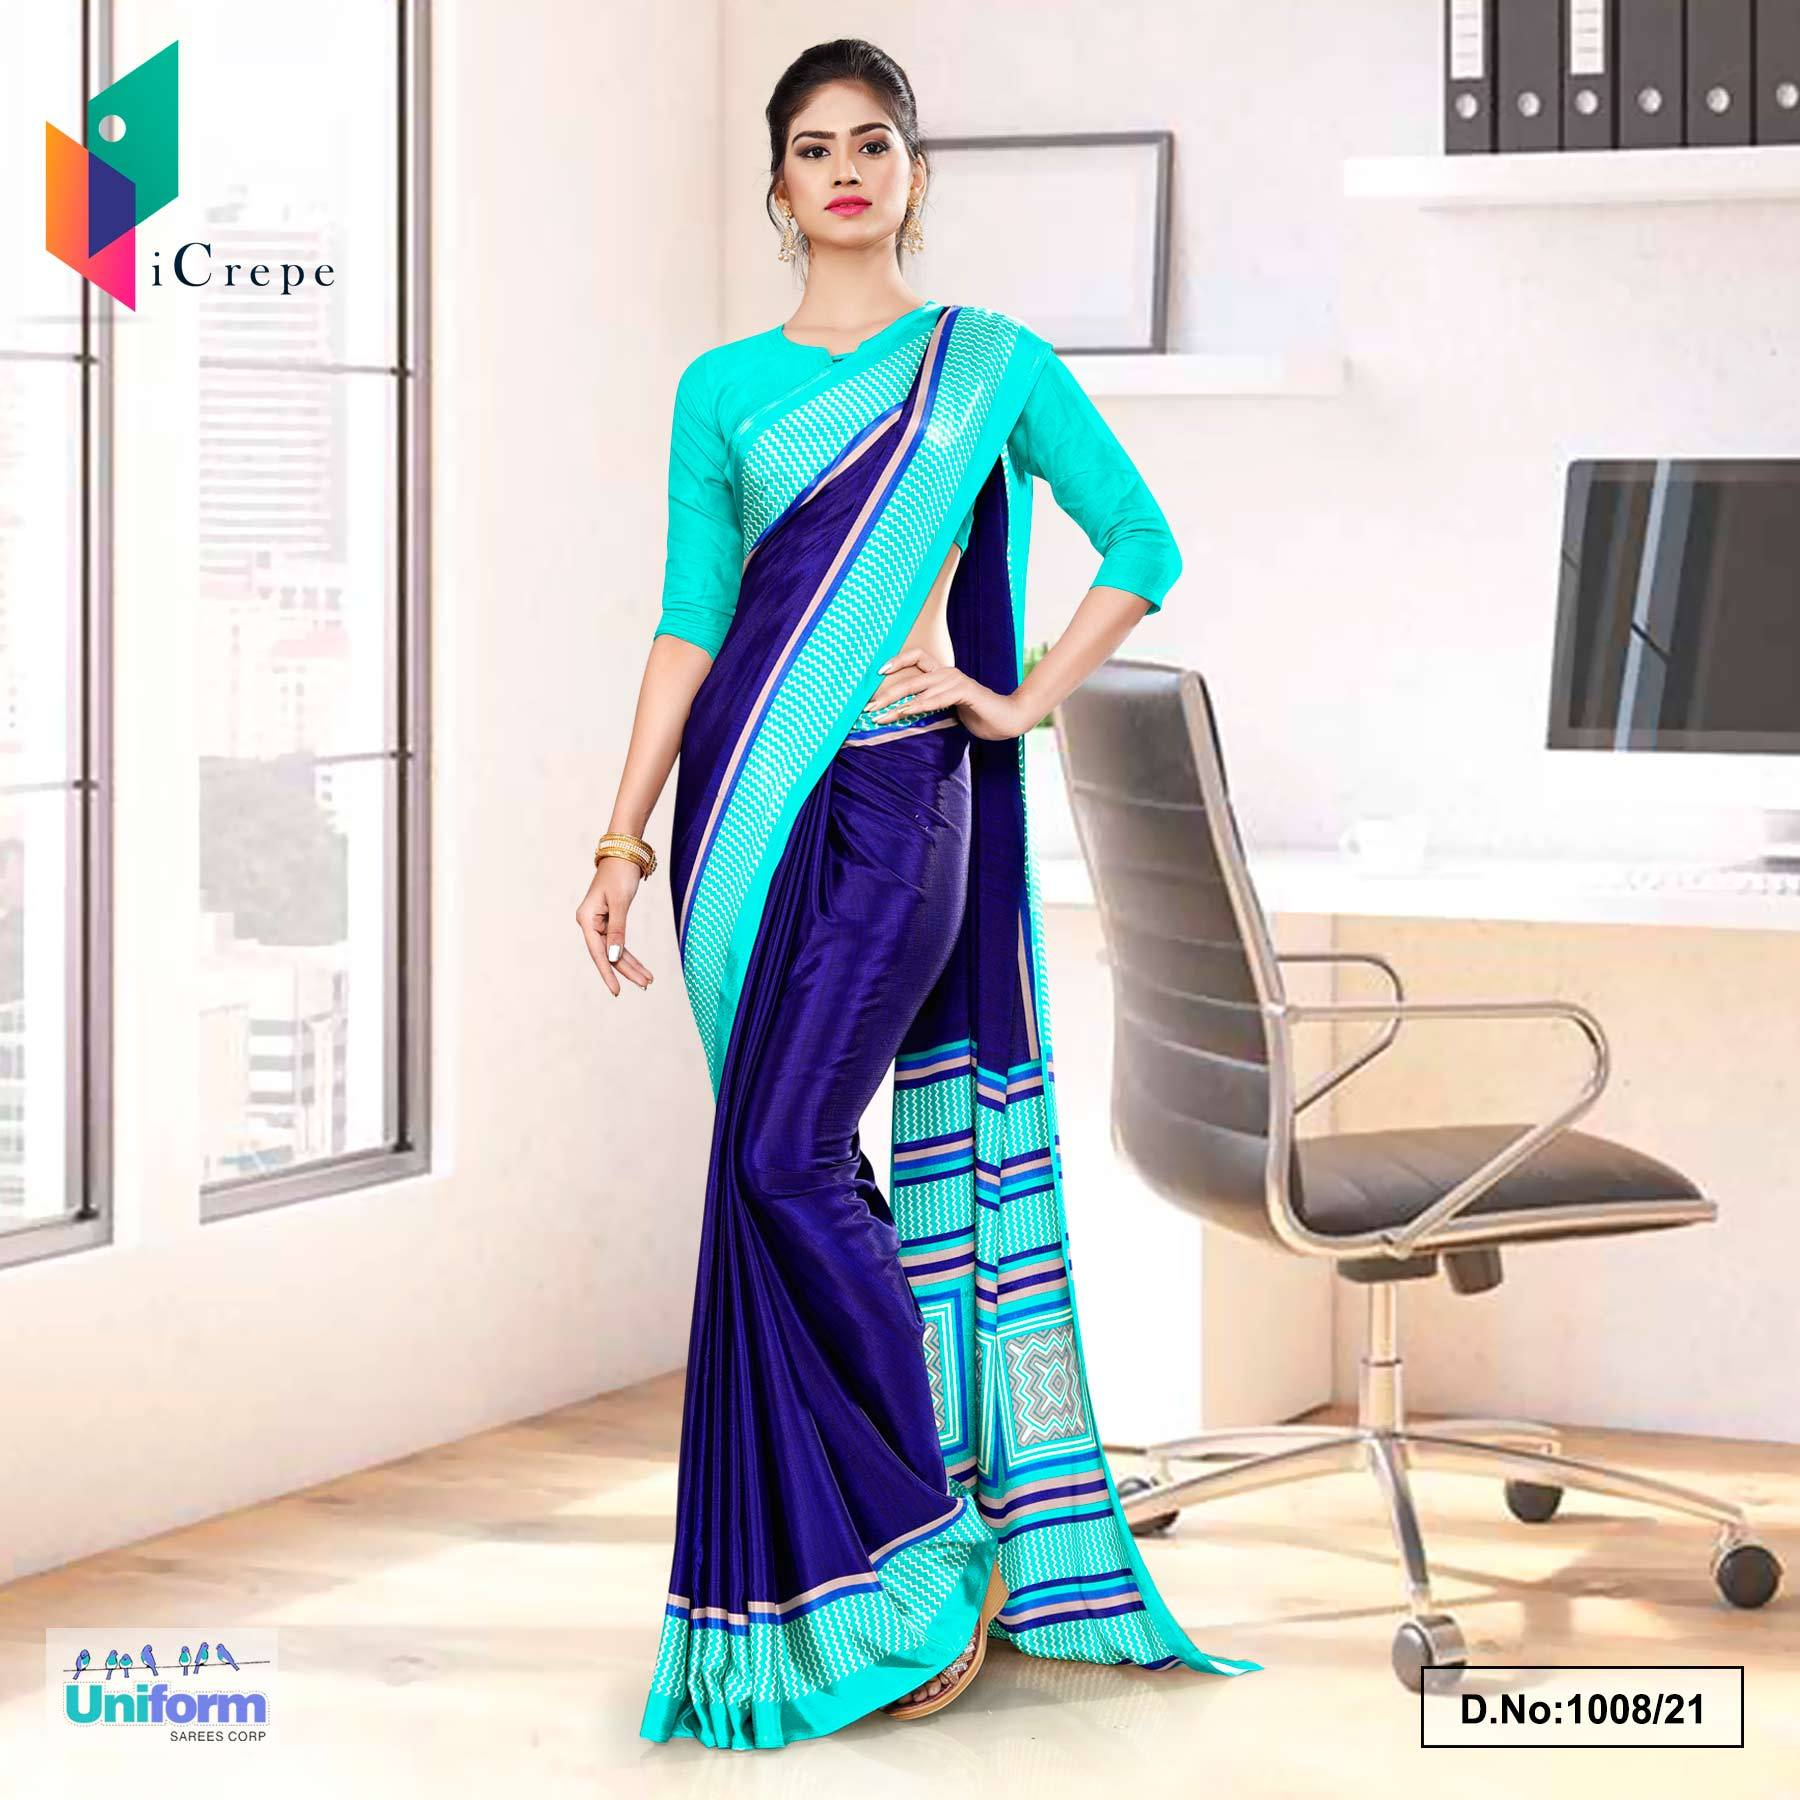 Navy Blue Sea Green Premium Italian Silk Crepe Saree for Front Office Uniform Sarees